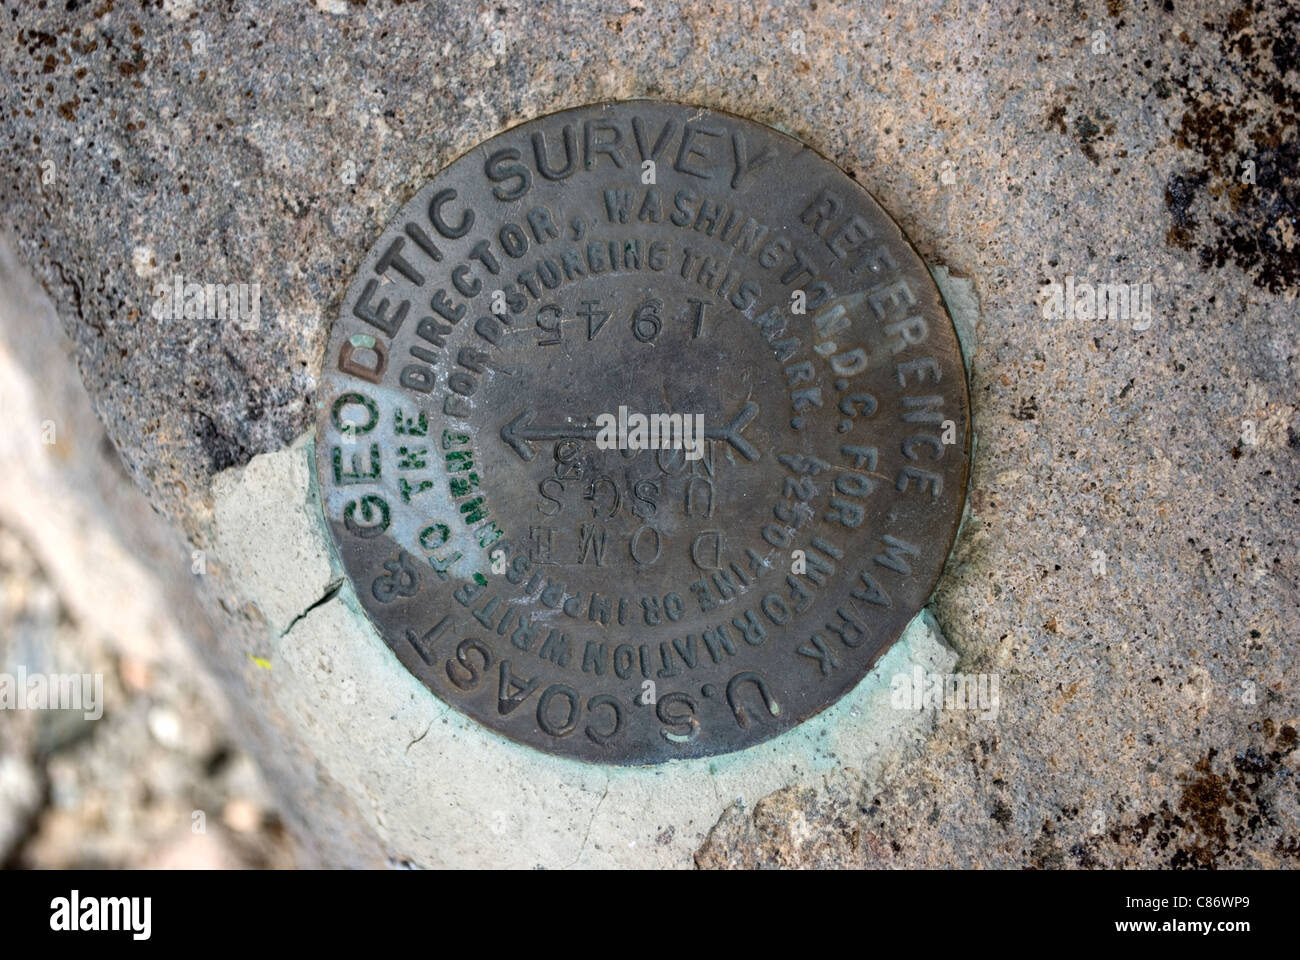 A reference marker found in the Santa Fe National Forest denoting the date and location of a geological survey marker. - Stock Image